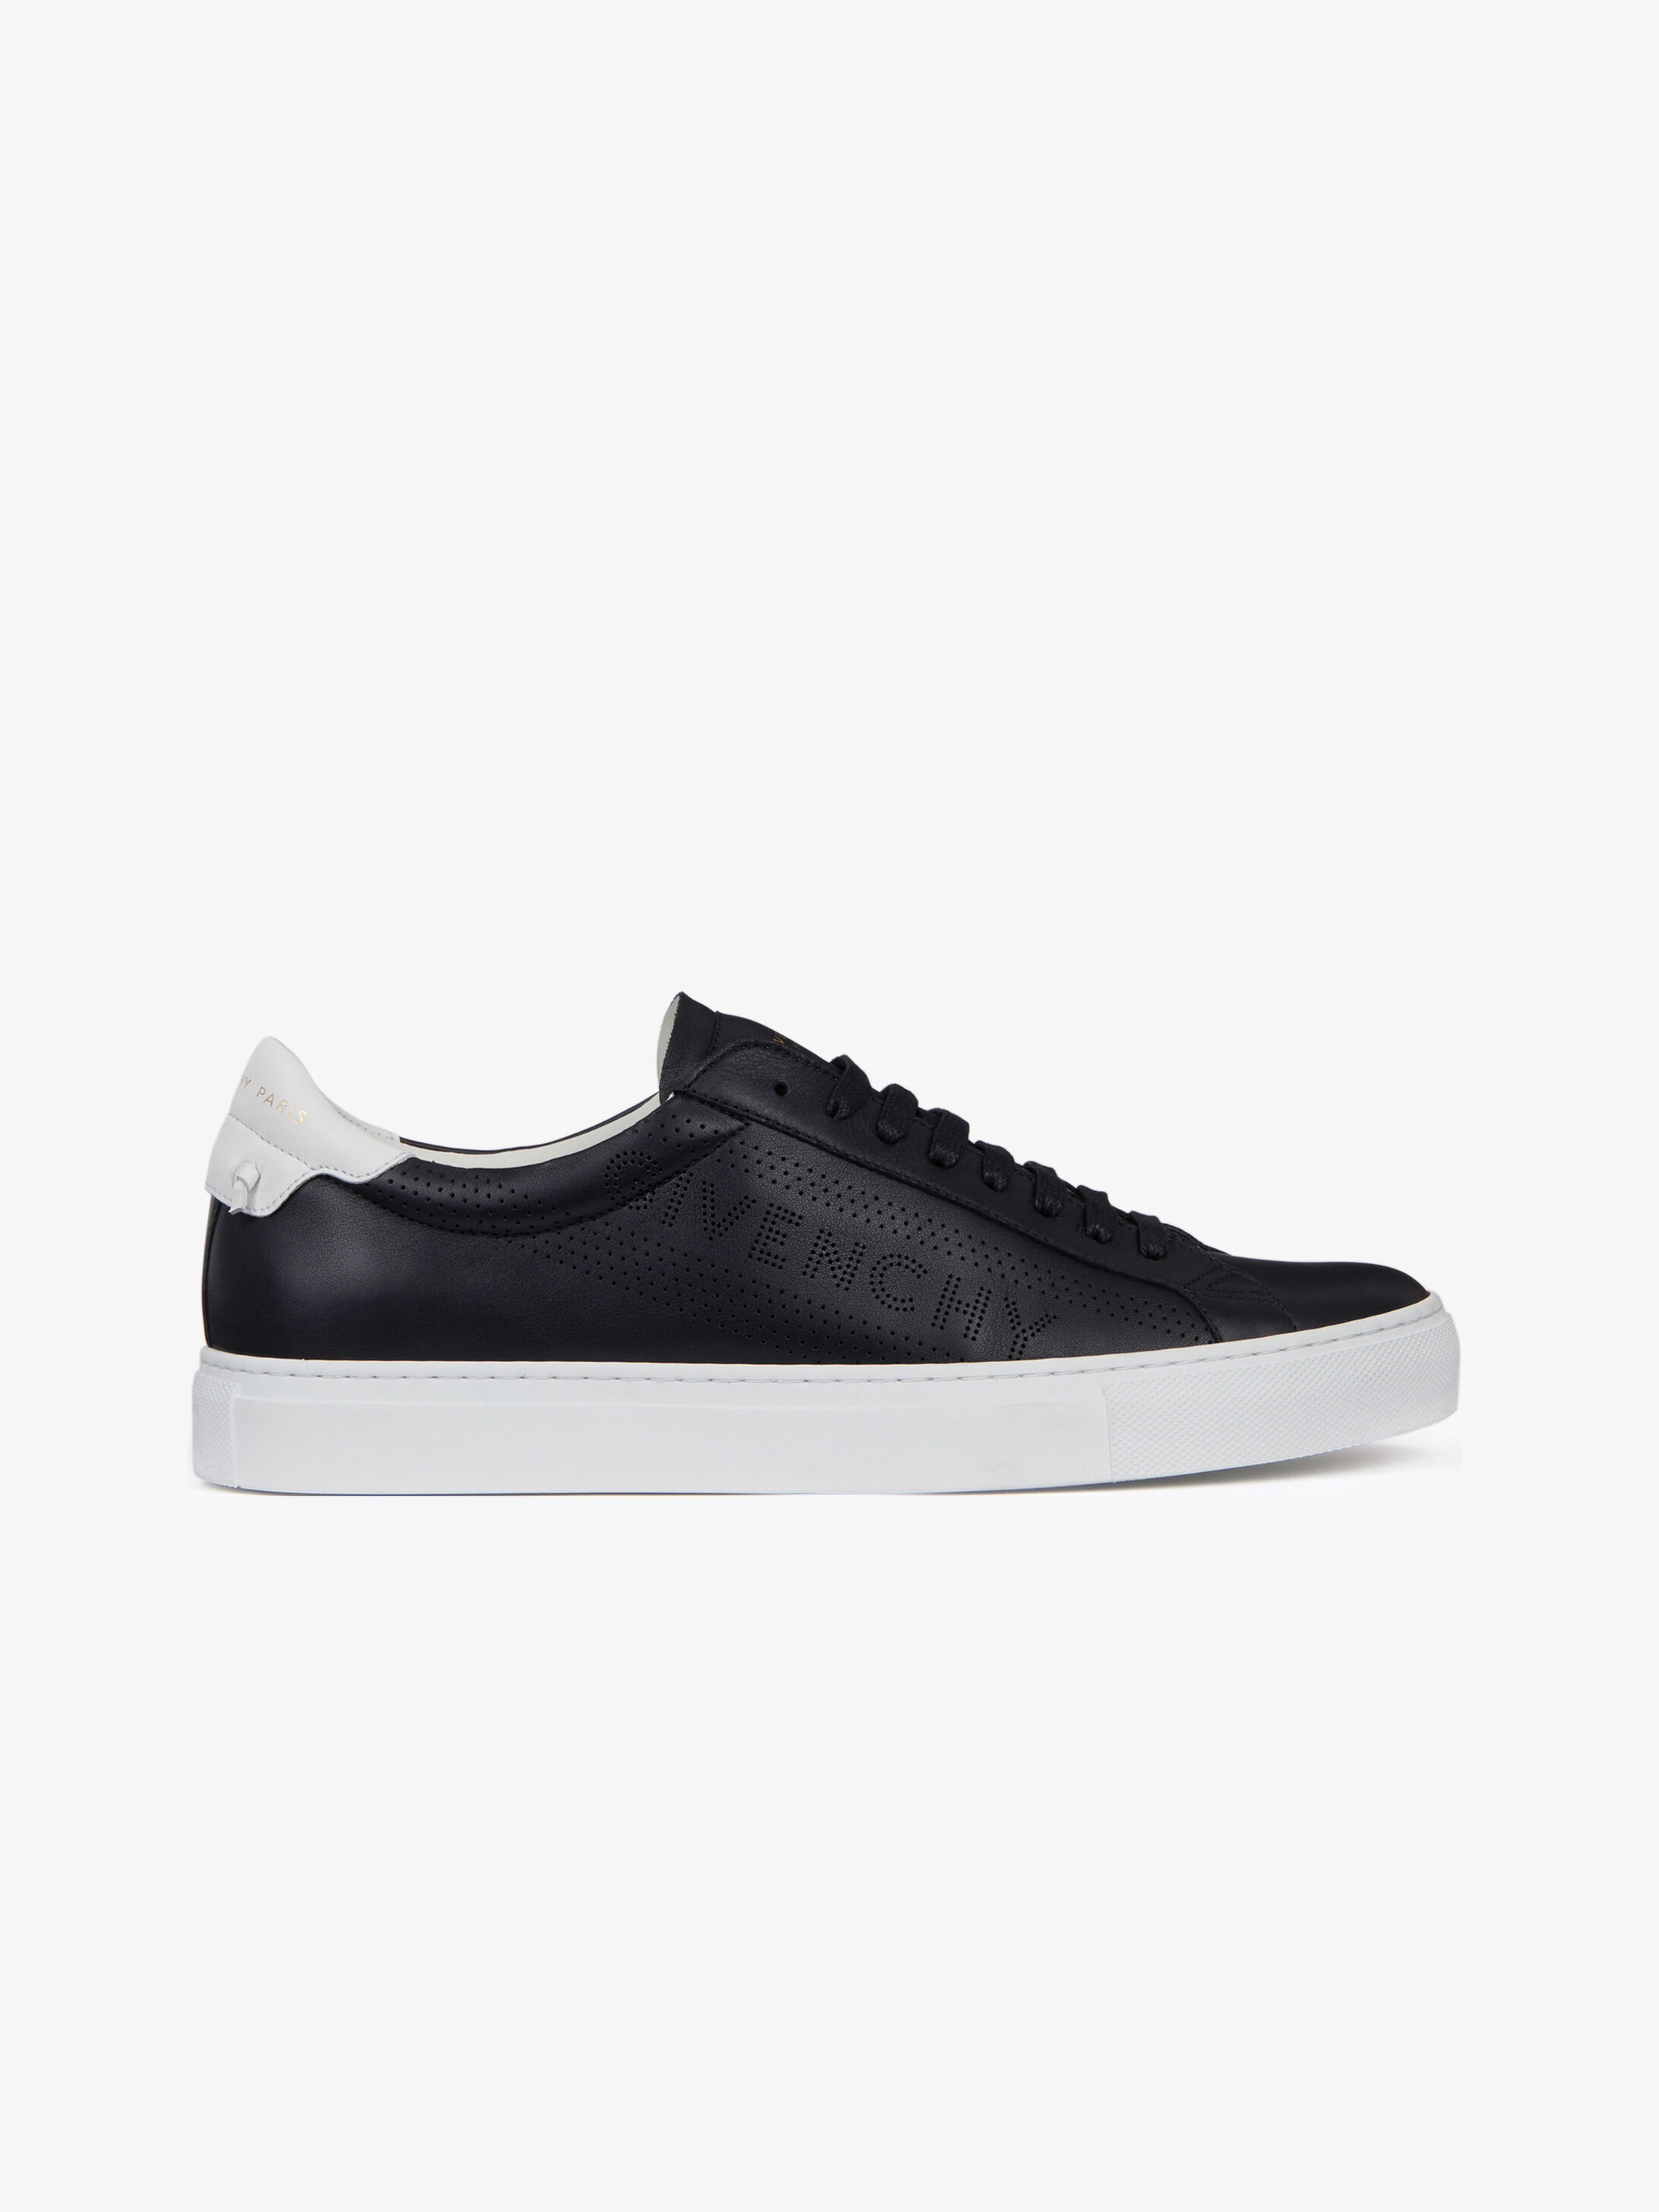 976e17cb851 Men s Sneakers collection by Givenchy.